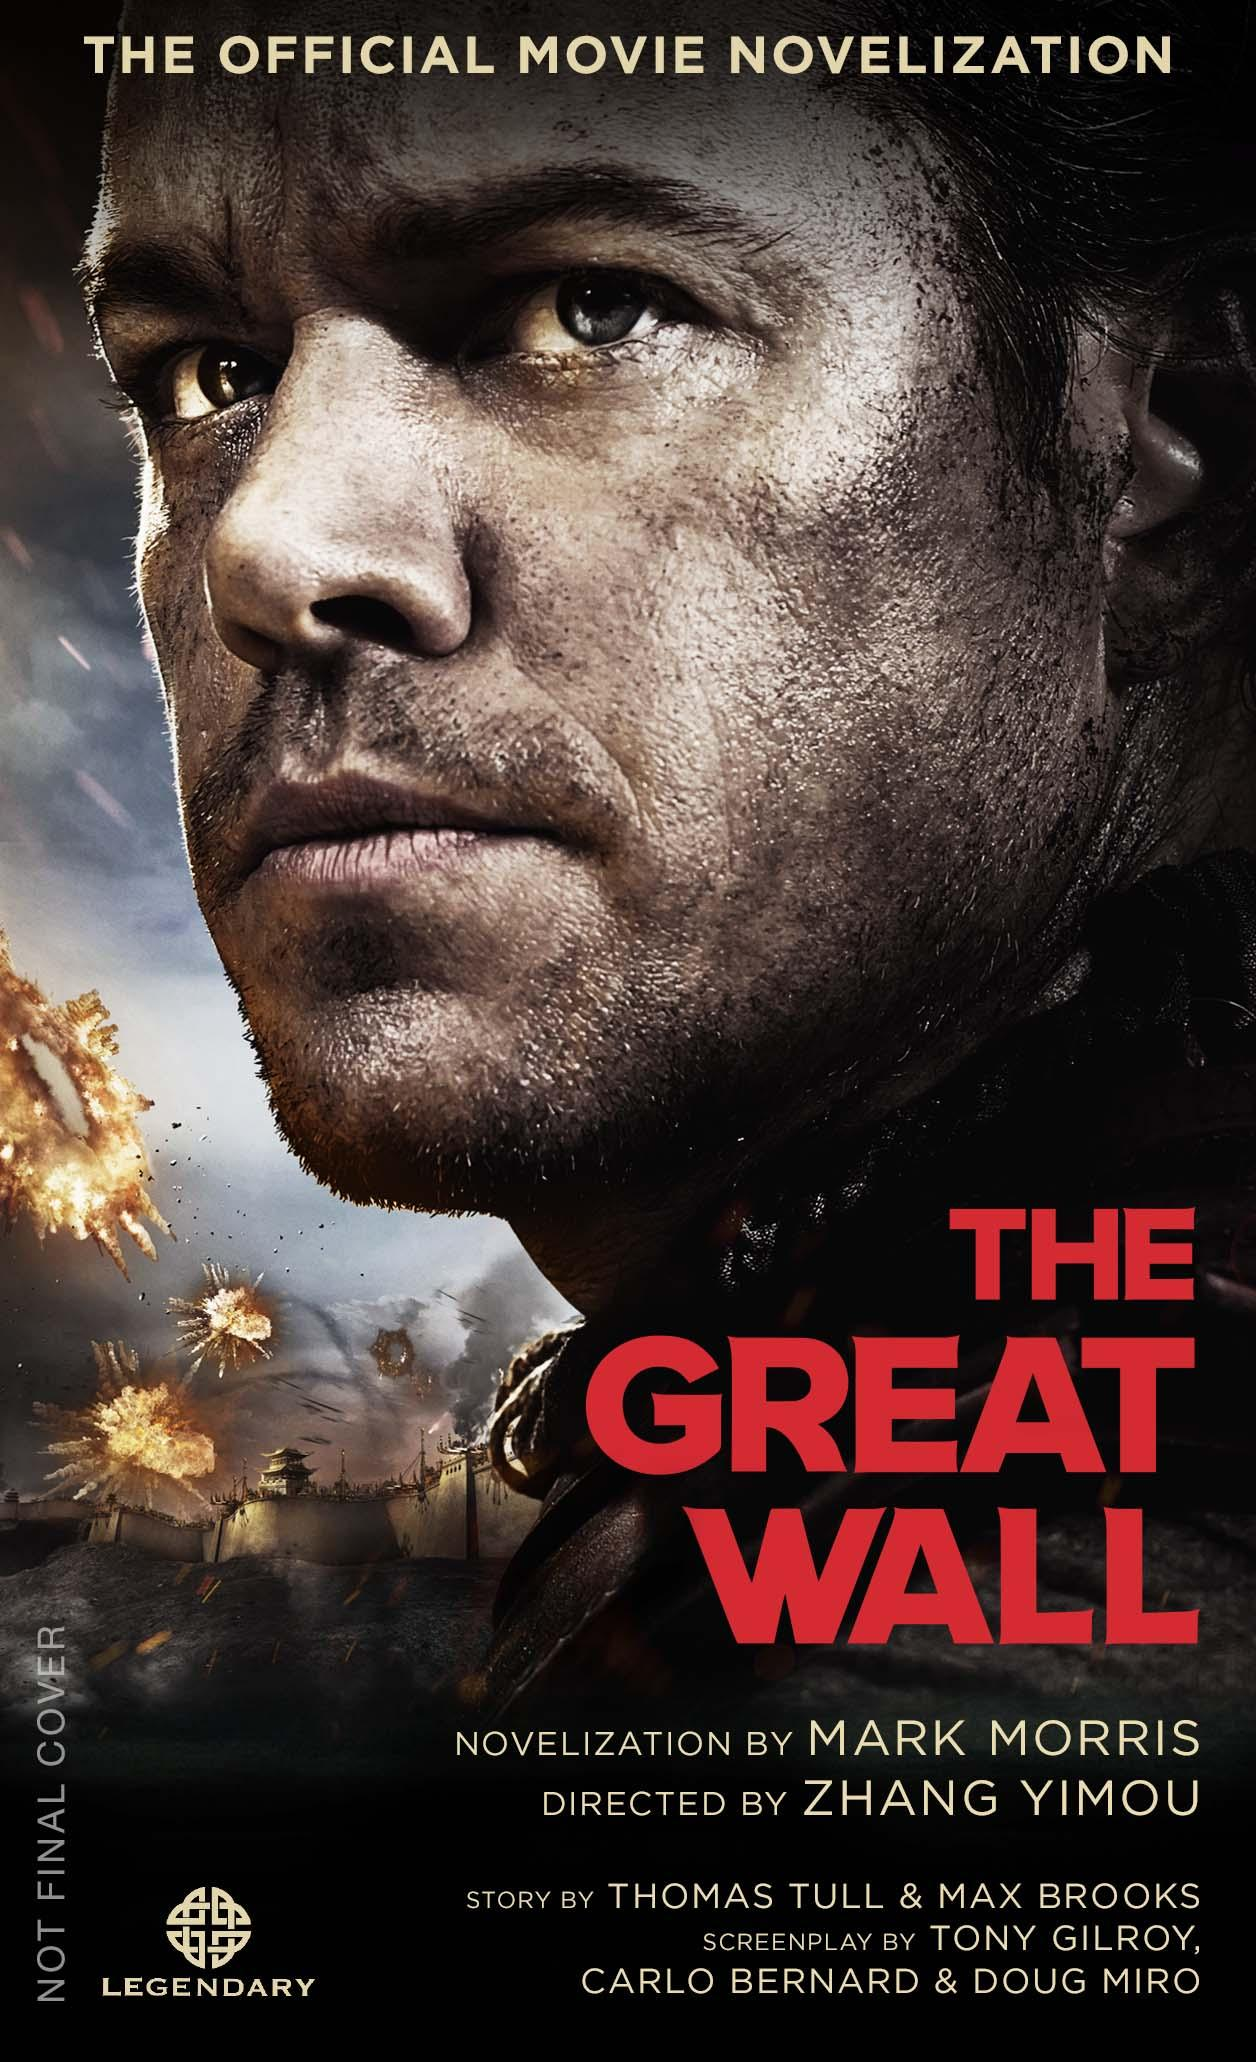 The Great Wall - The Official Movie Novelization xxx return of xander cage the official movie novelization